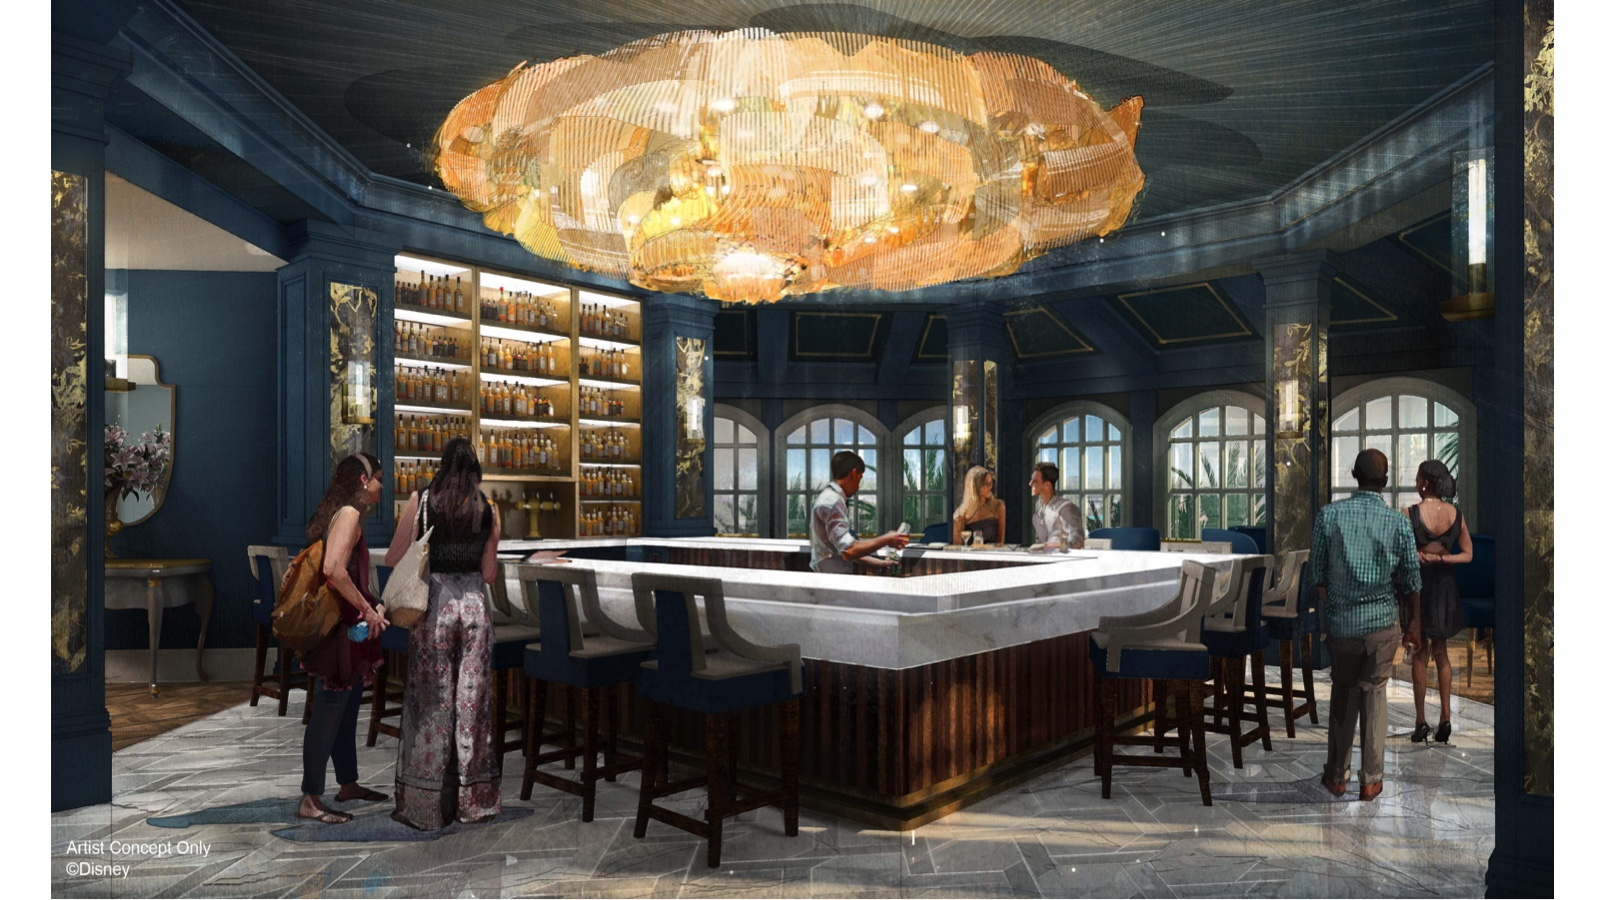 Beauty and the Beast - inspired lounge concept art